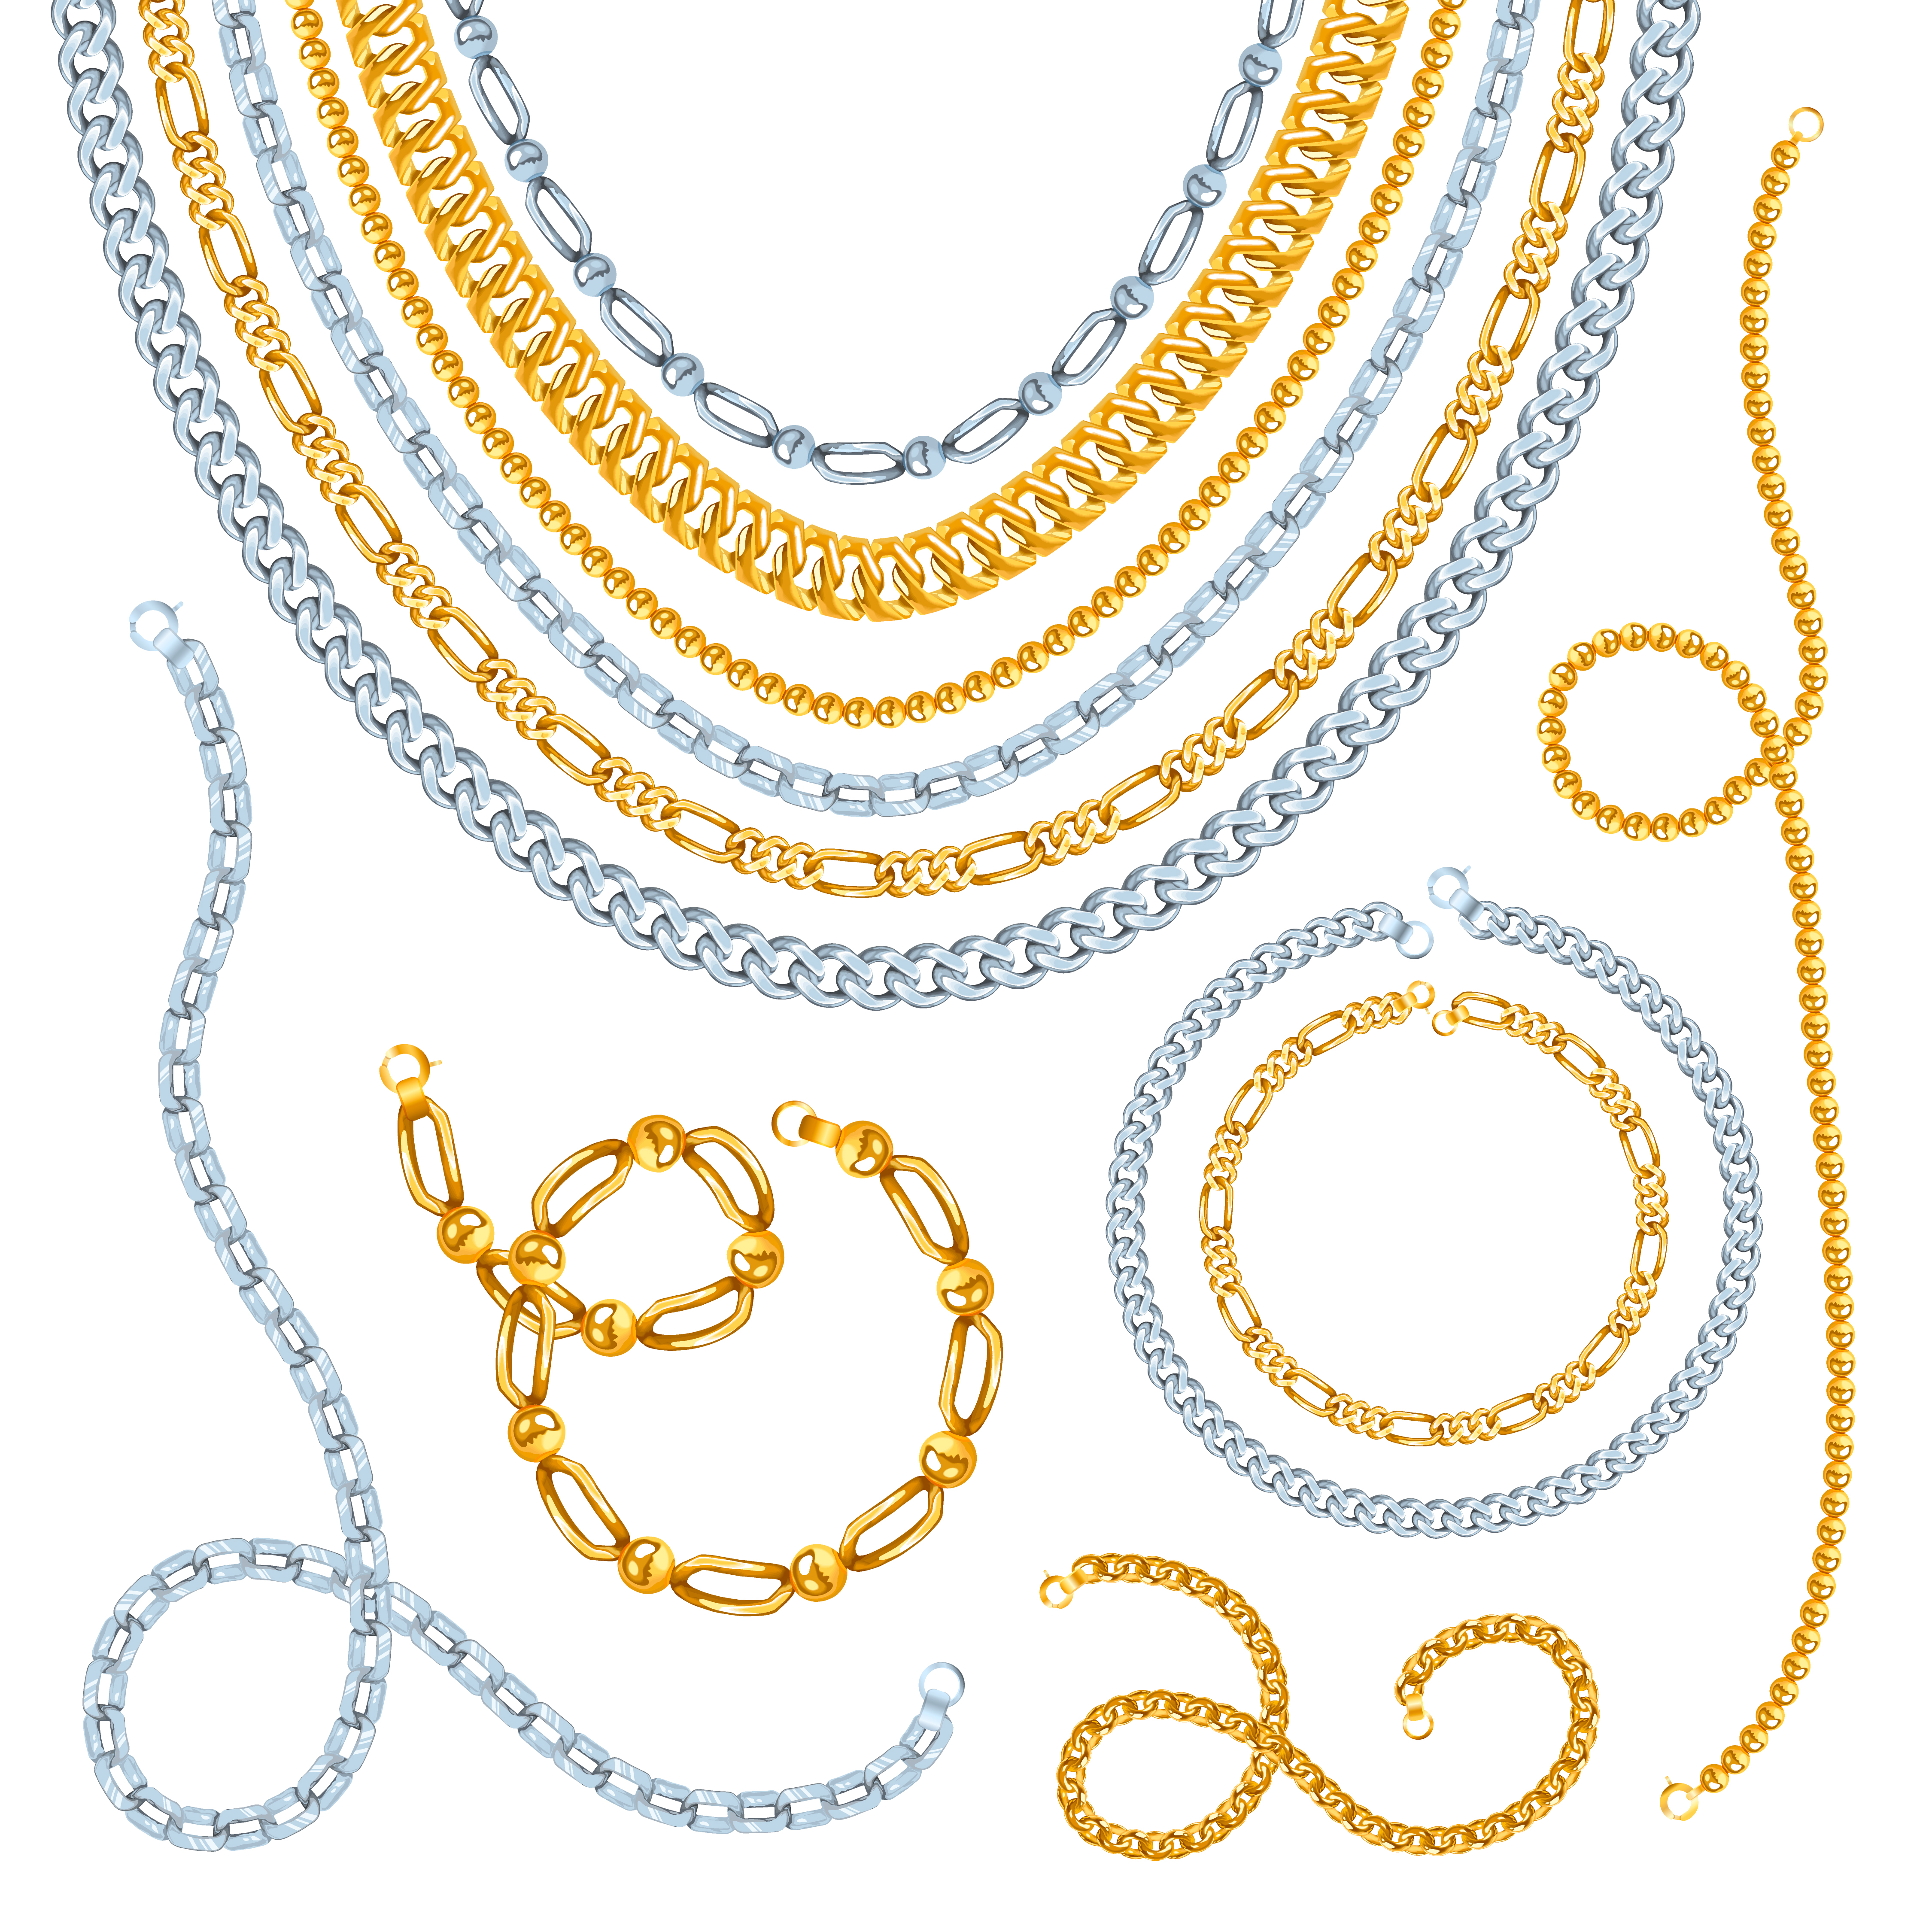 Golden And Silver Chains Set - Download Free Vectors ...  Chain Vector